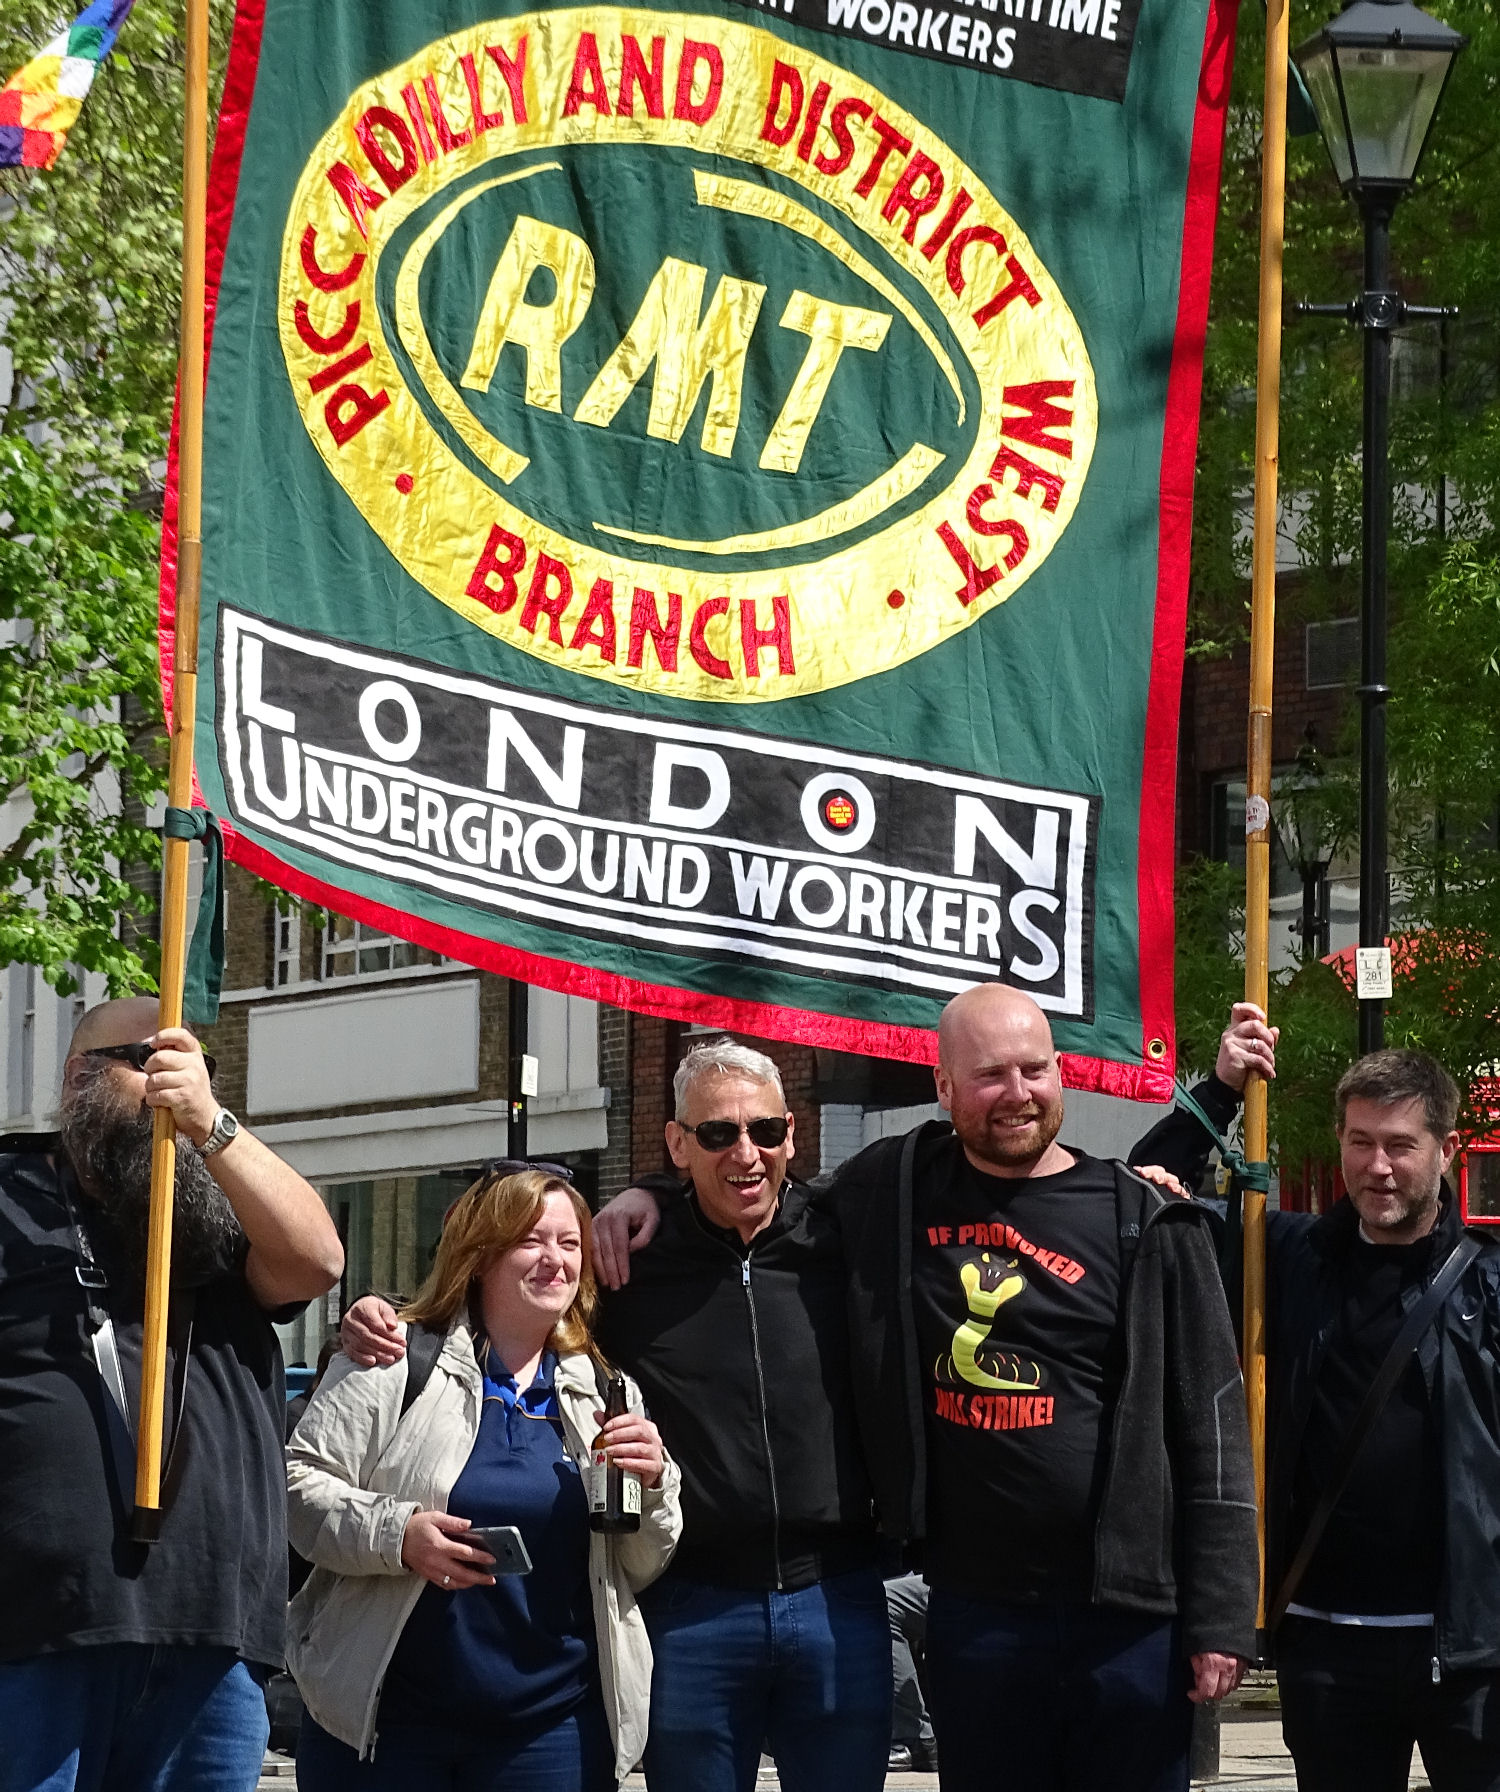 RMT PICCADILLY